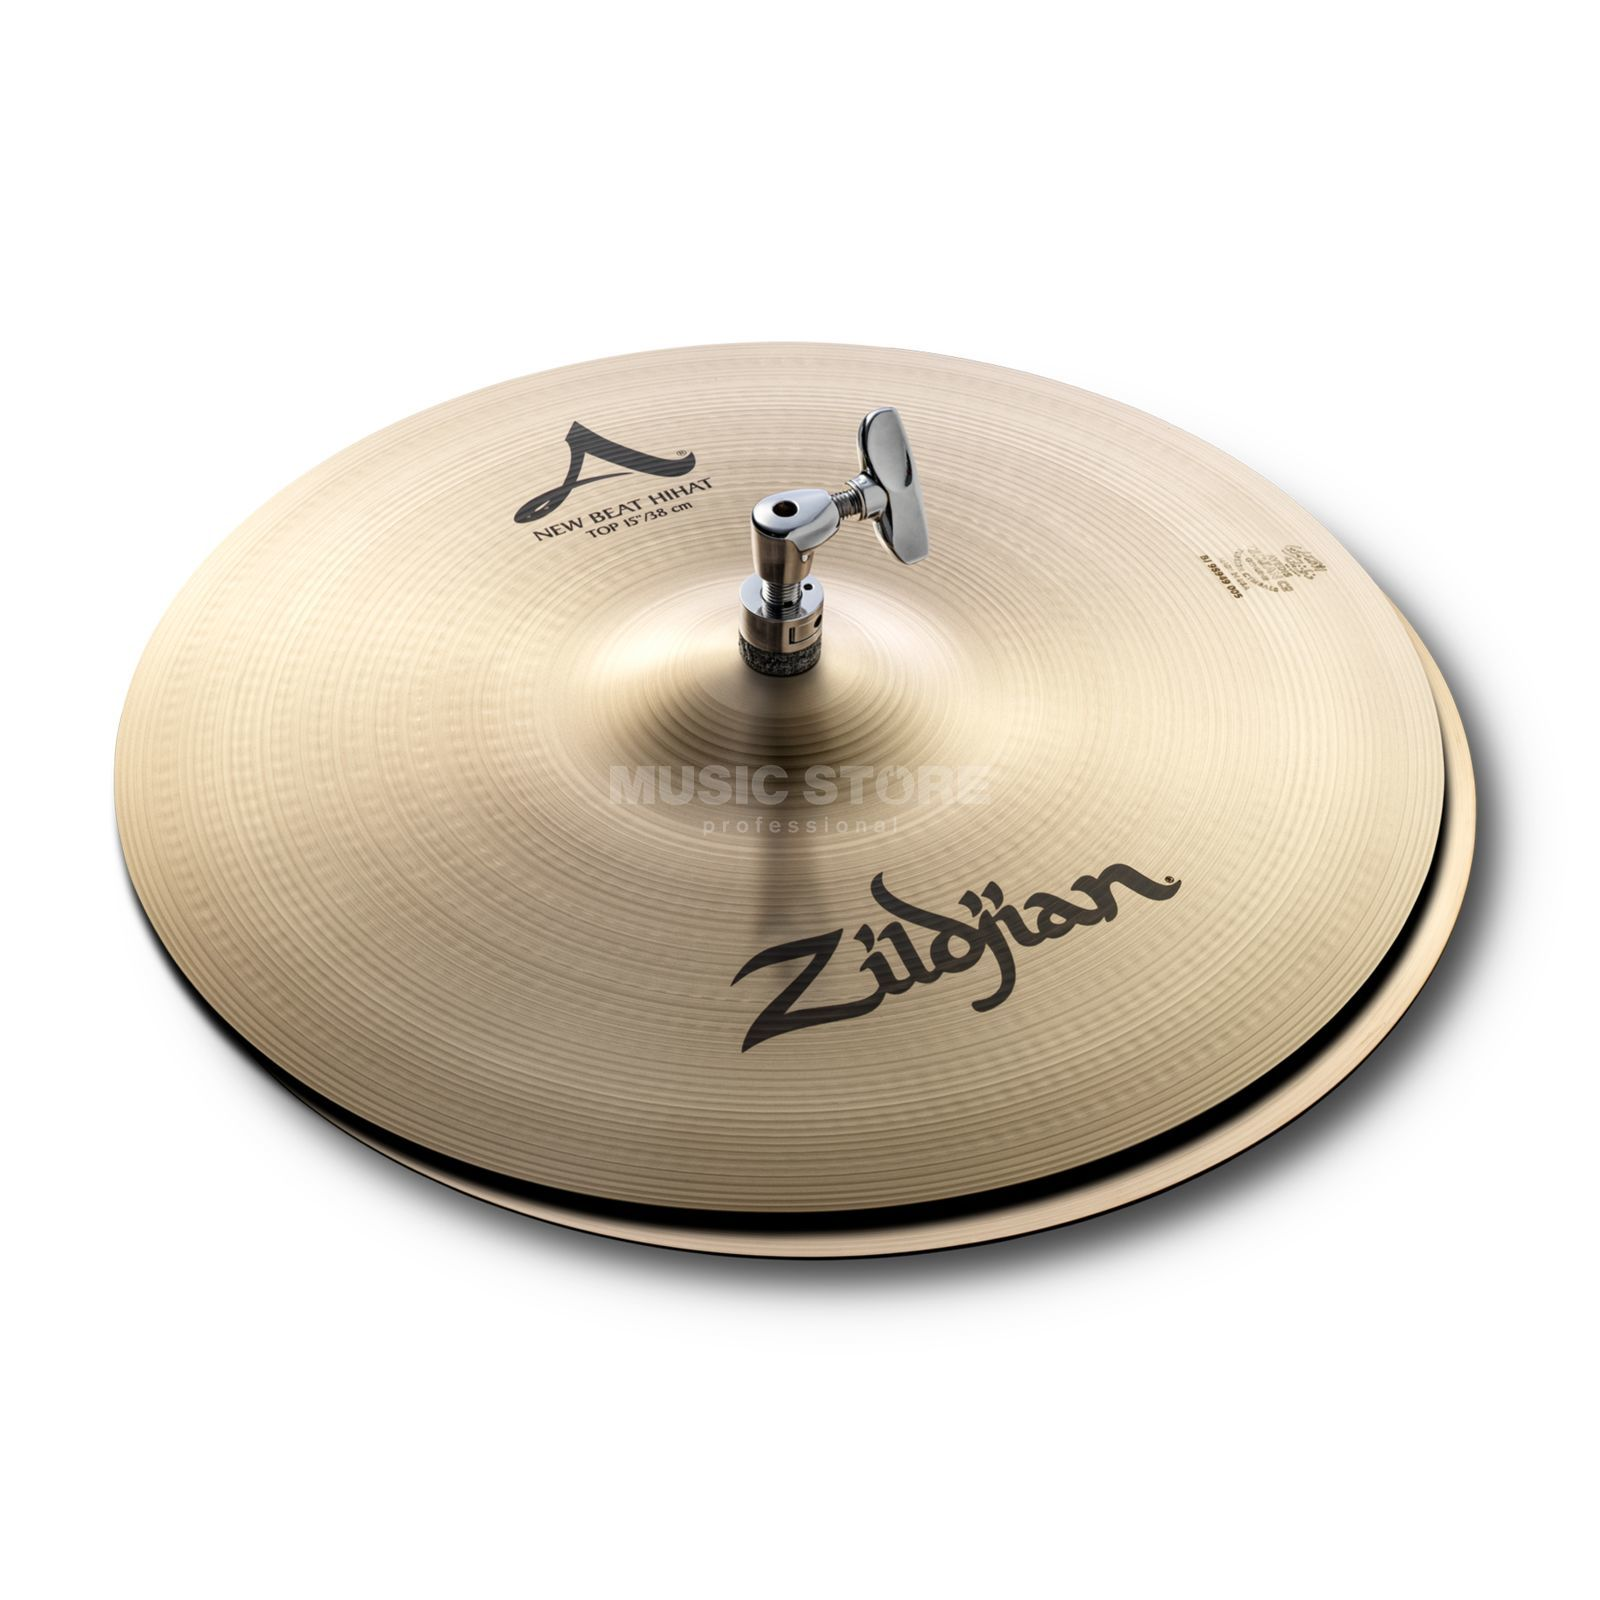 "Zildjian A' Zildjian NewBeat HiHat 15"", Traditional Finish Produktbild"